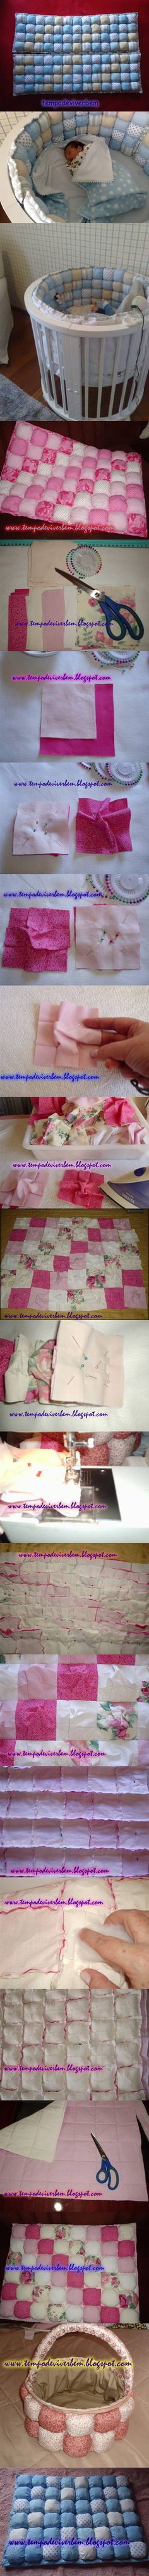 DIY Patchwork Baby Sleeping Basket Bumper 2